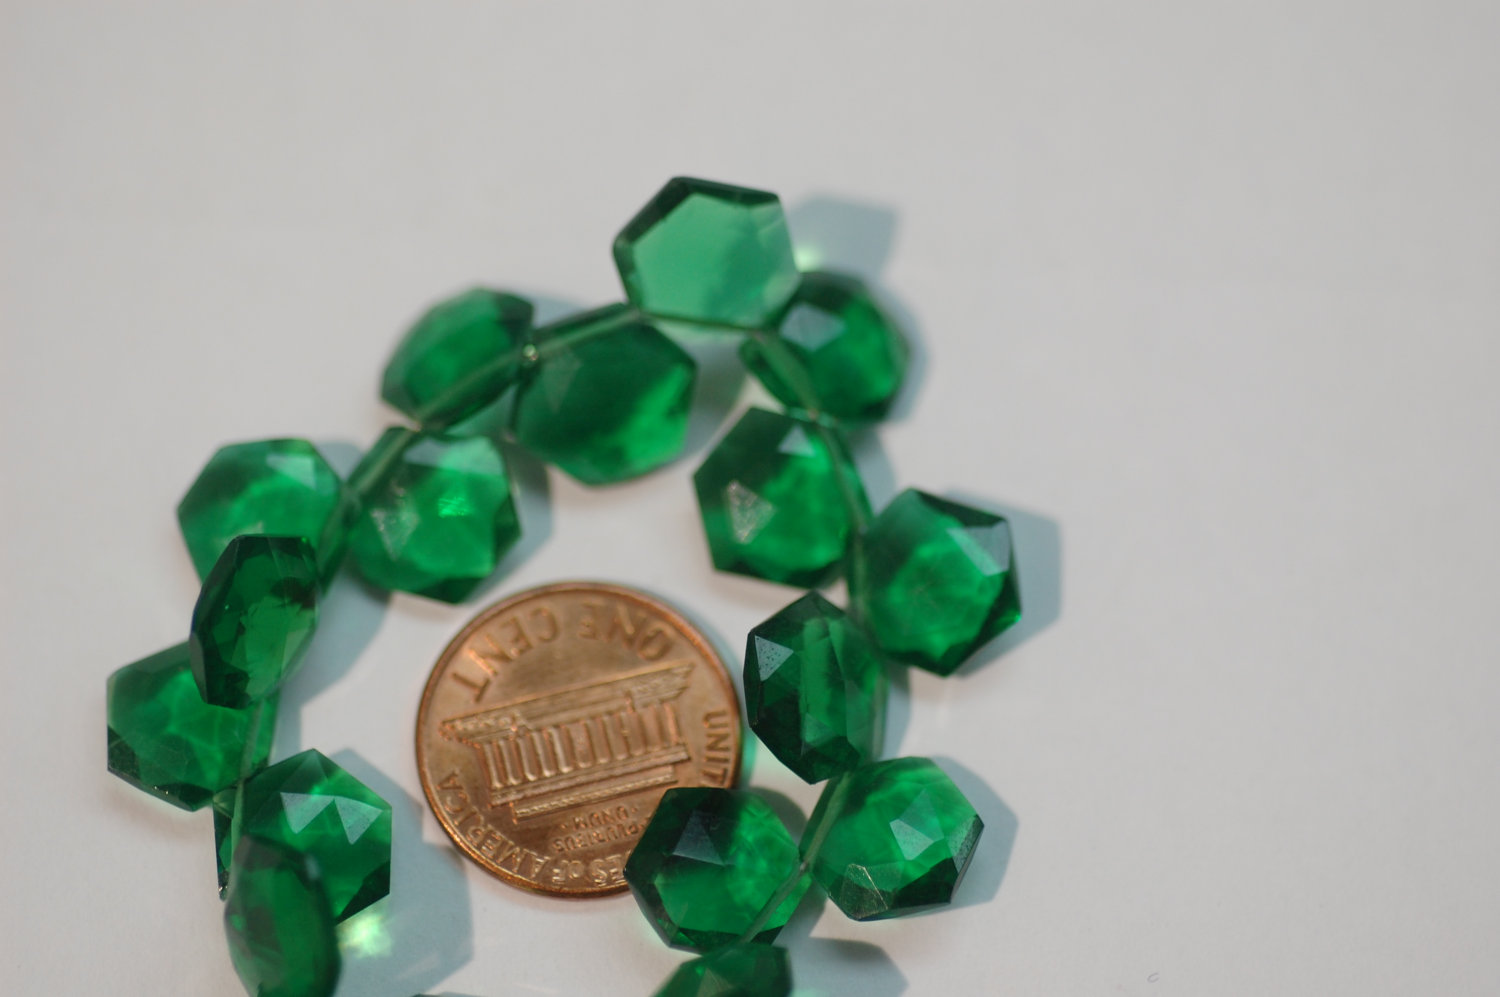 Hydro Green Octagon Faceted